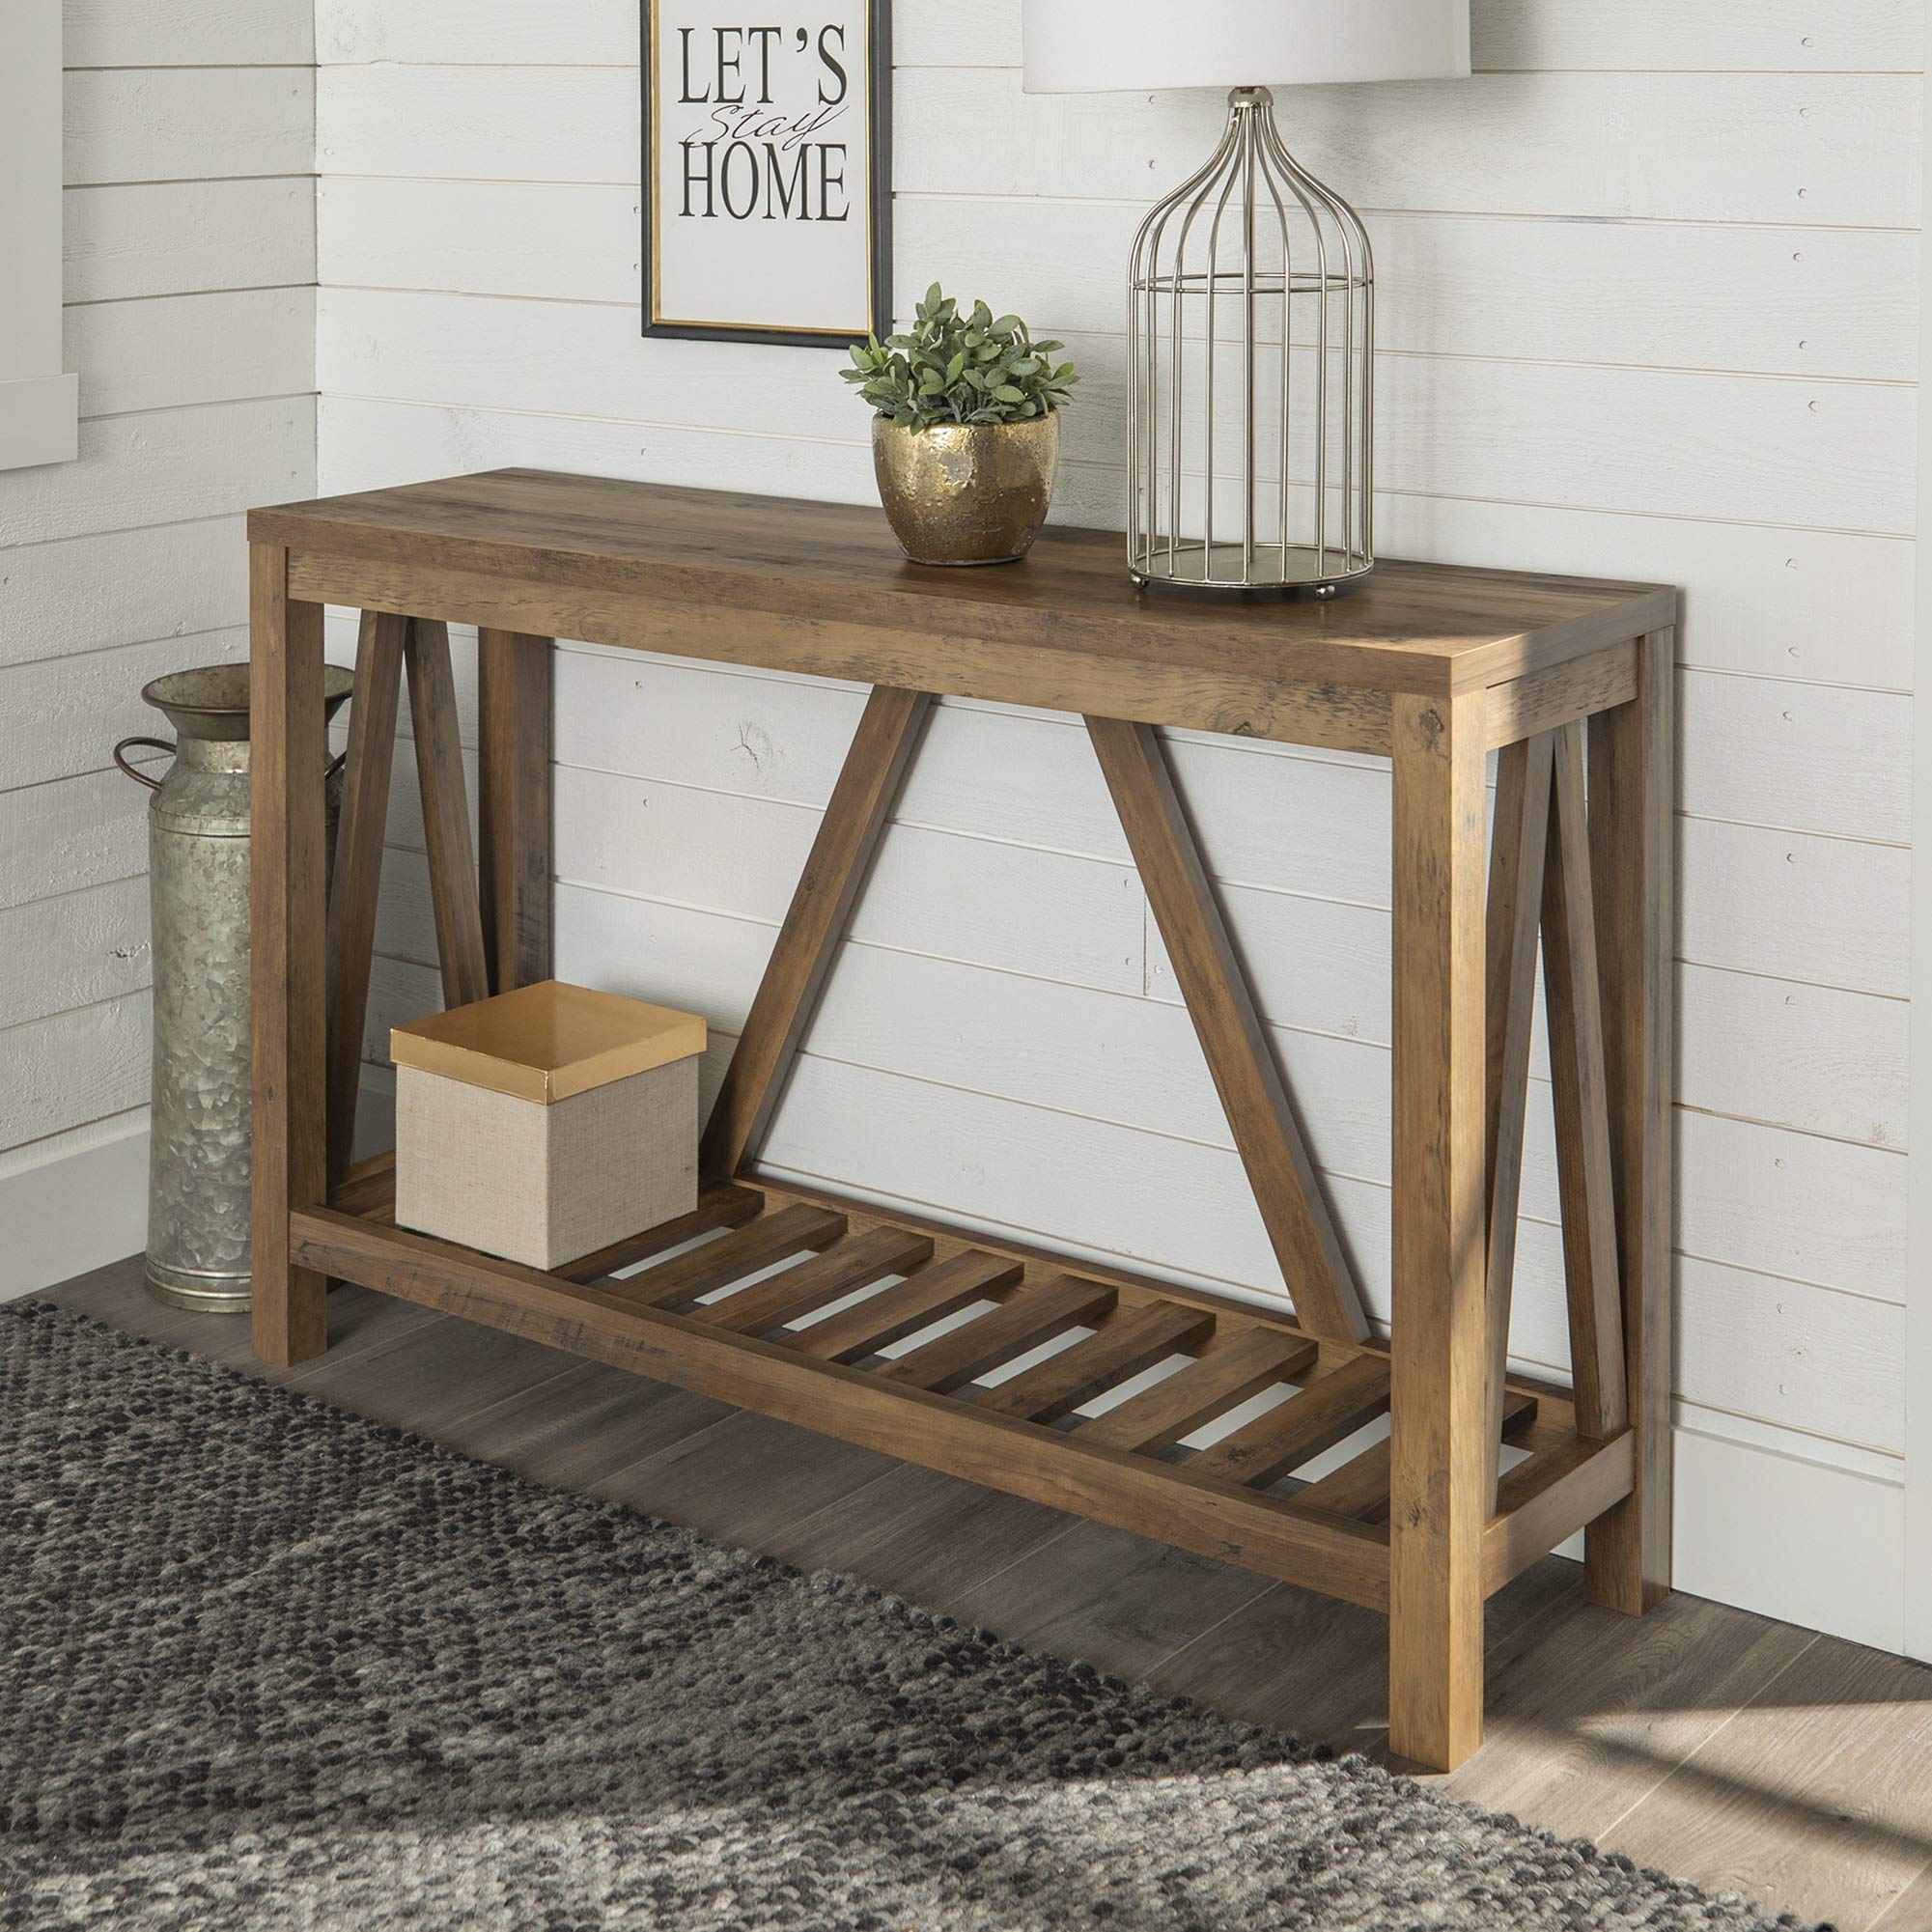 WE Furniture  Modern Farmhouse Accent Entryway Table, 52 Inch, Brown Reclaimed Barnwood by WE Furniture